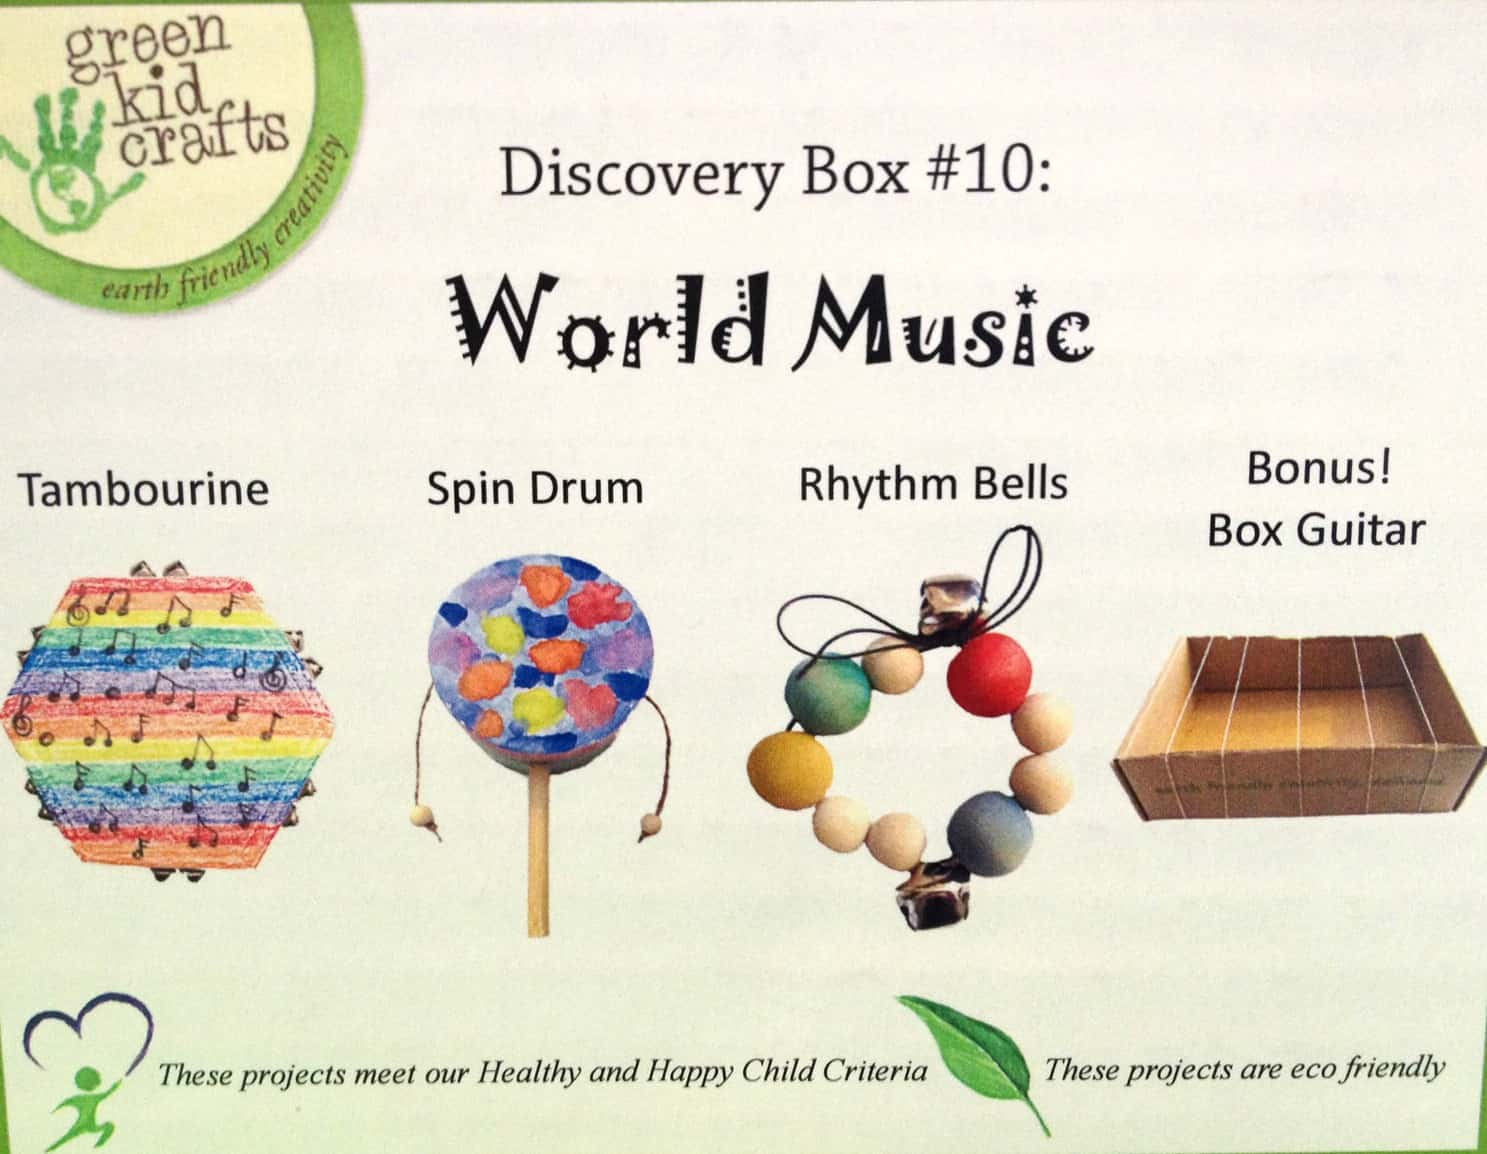 Diy Musical Instruments With Green Kid Crafts